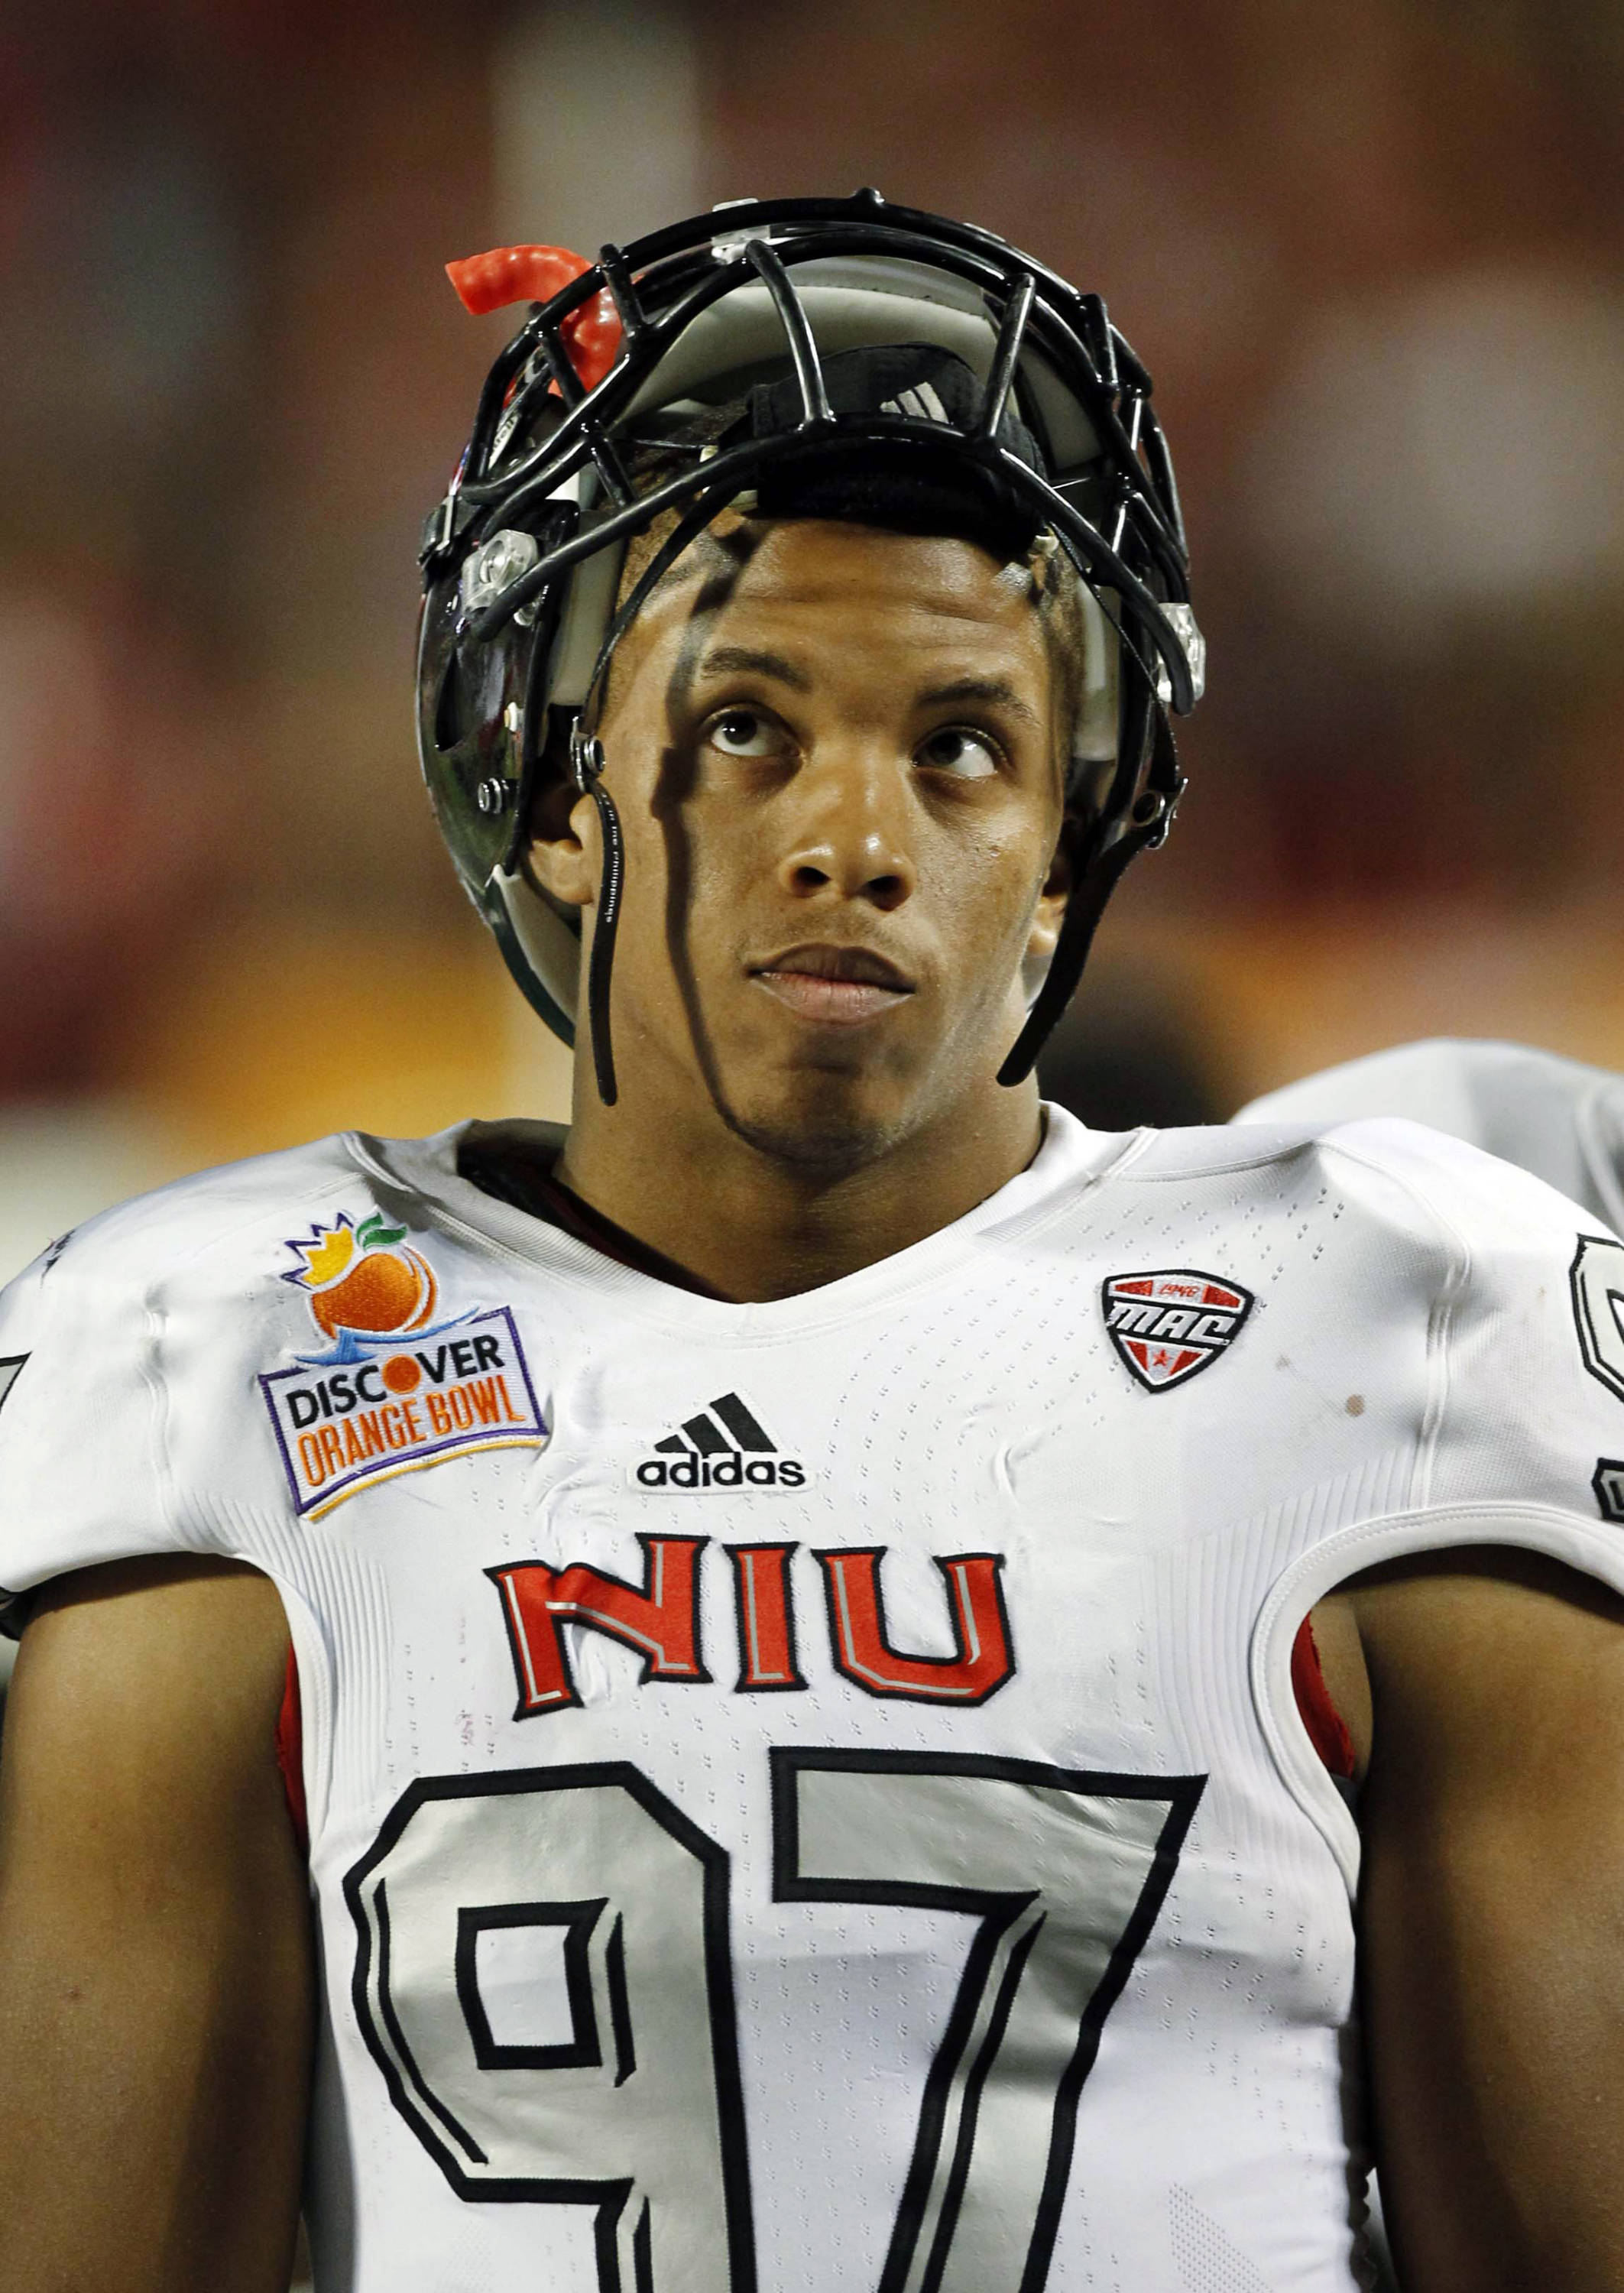 Northern Illinois defensive end Joe Windsor (97) looks up during the second half of the Orange Bowl NCAA college football game against Florida State, Tuesday, Jan. 1, 2013, in Miami. (AP Photo/Alan Diaz)